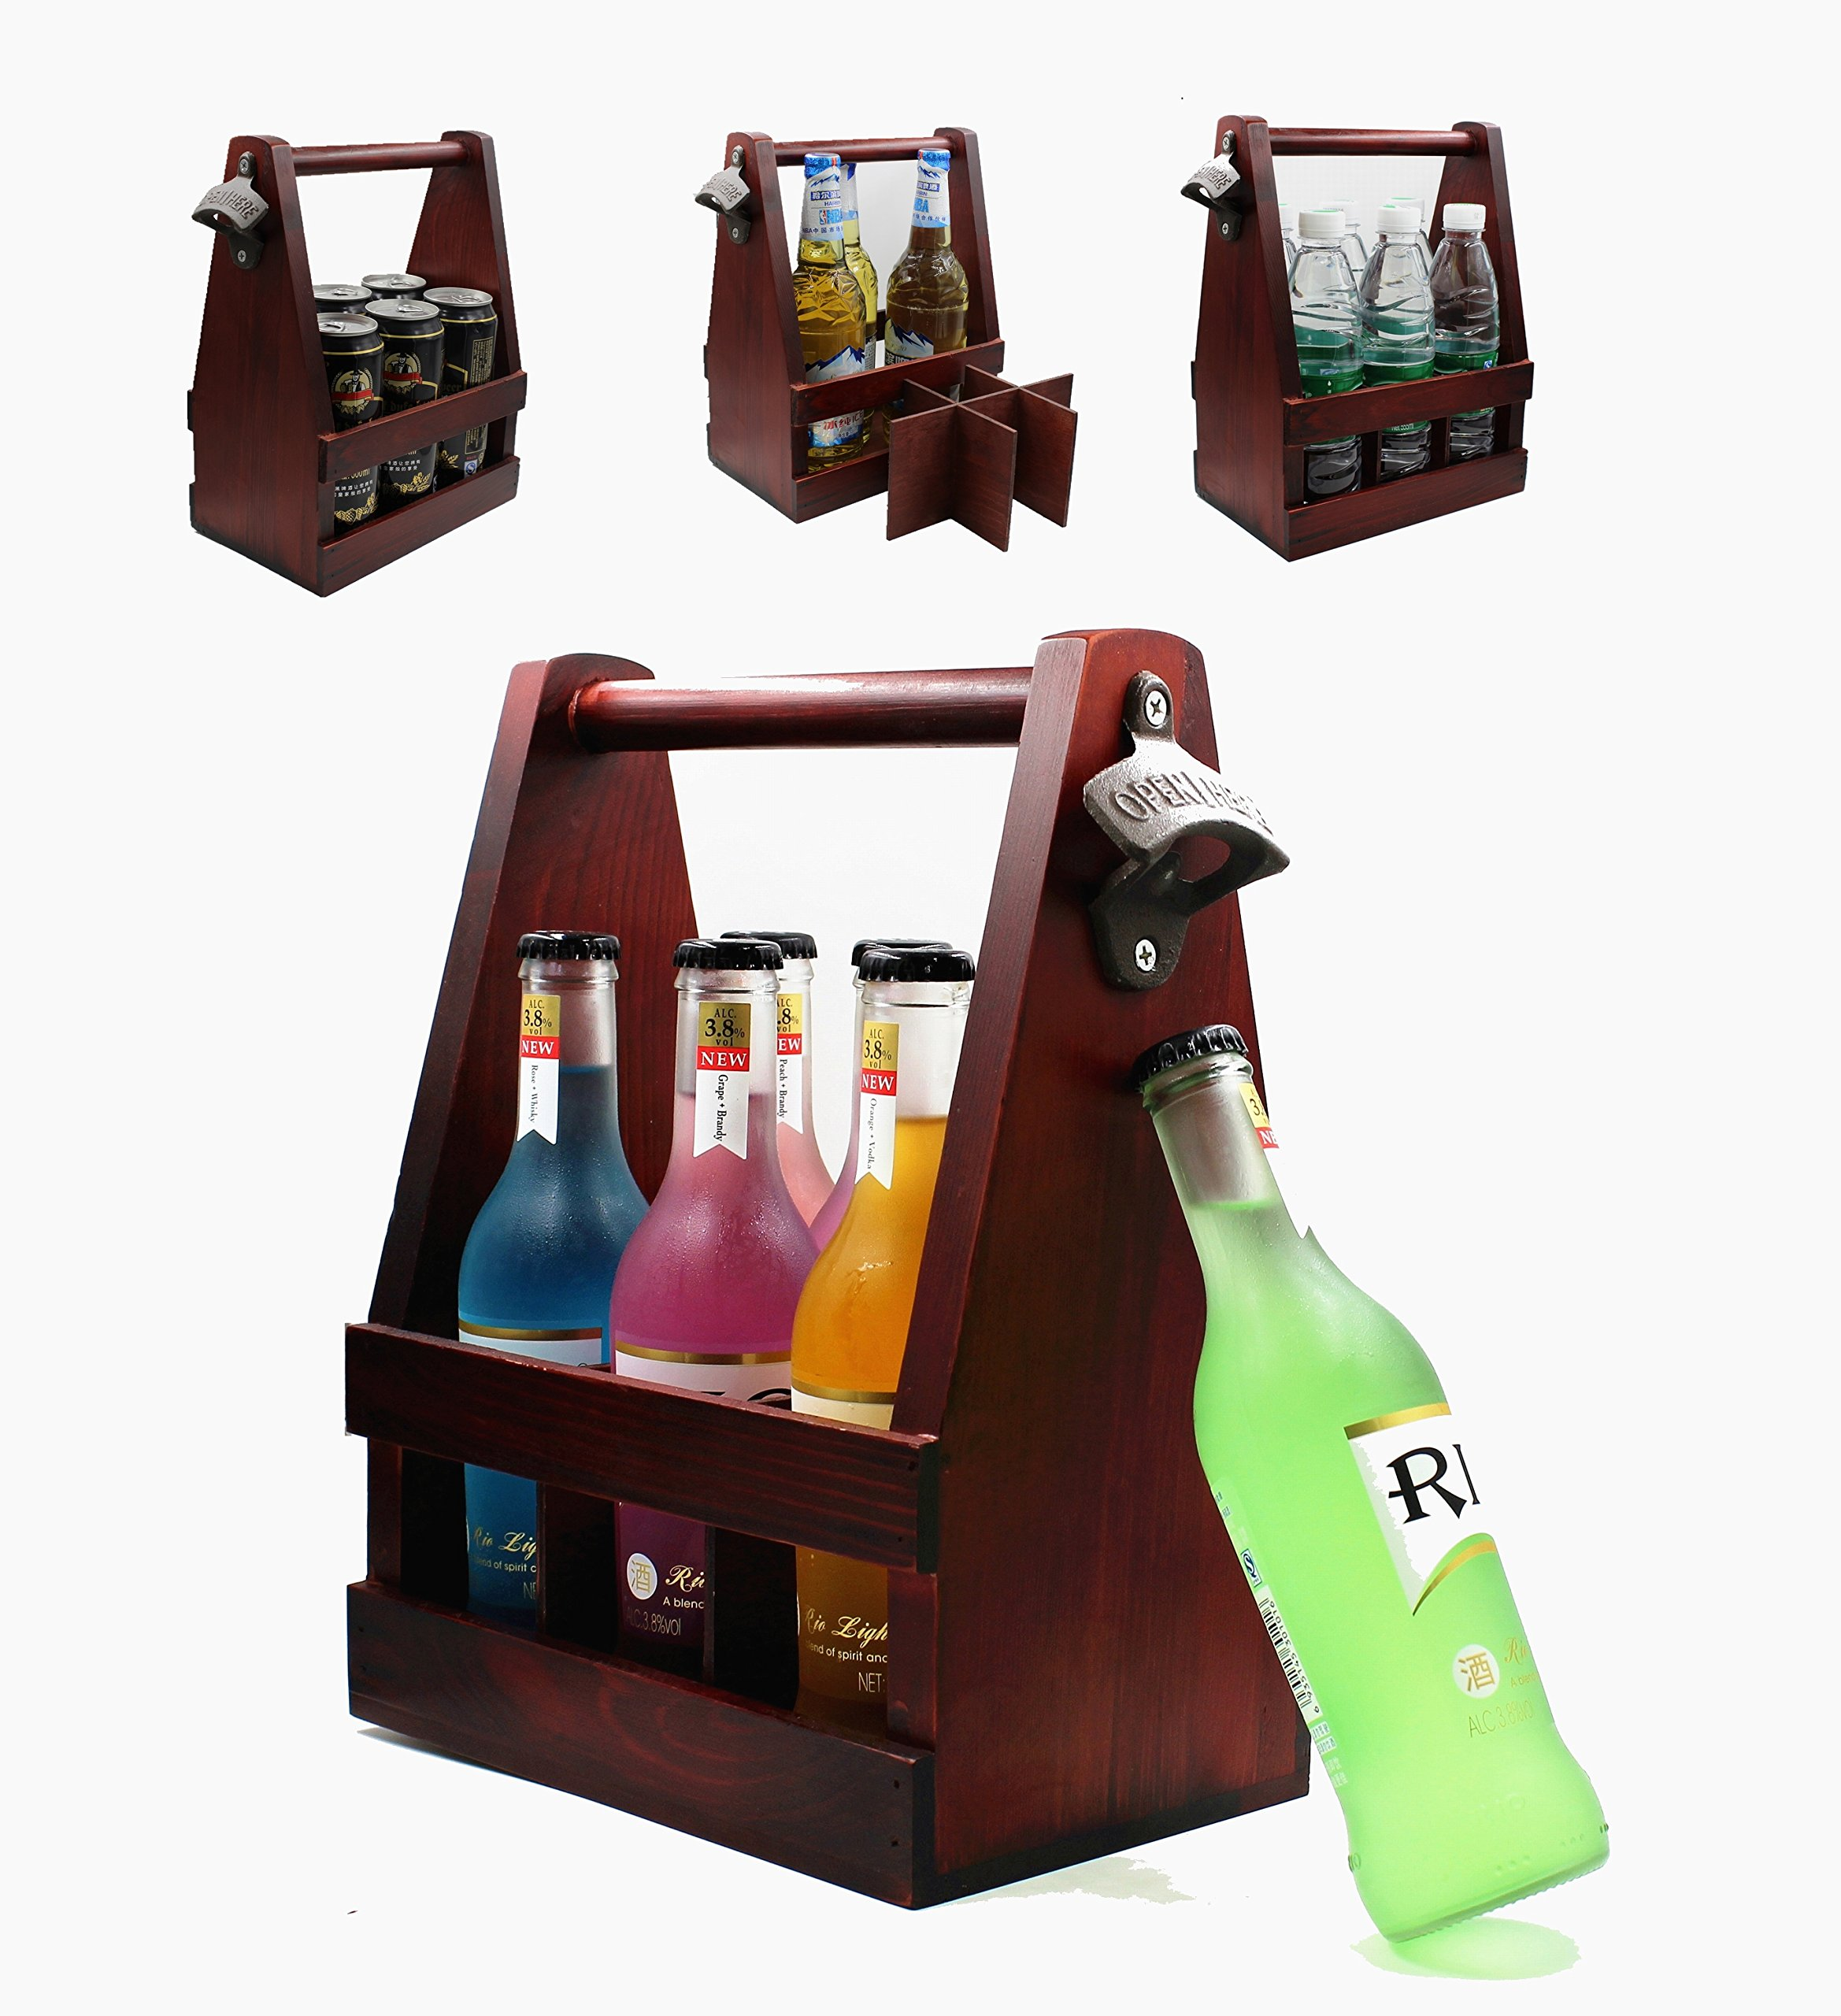 Wooden Beer Caddy / Carrier / Holder / Tote / Basket With Bottle Opener Handcrafted Wood Removable Inserts 6 Packs for  Anniversaries / Groomsman / Birthdays